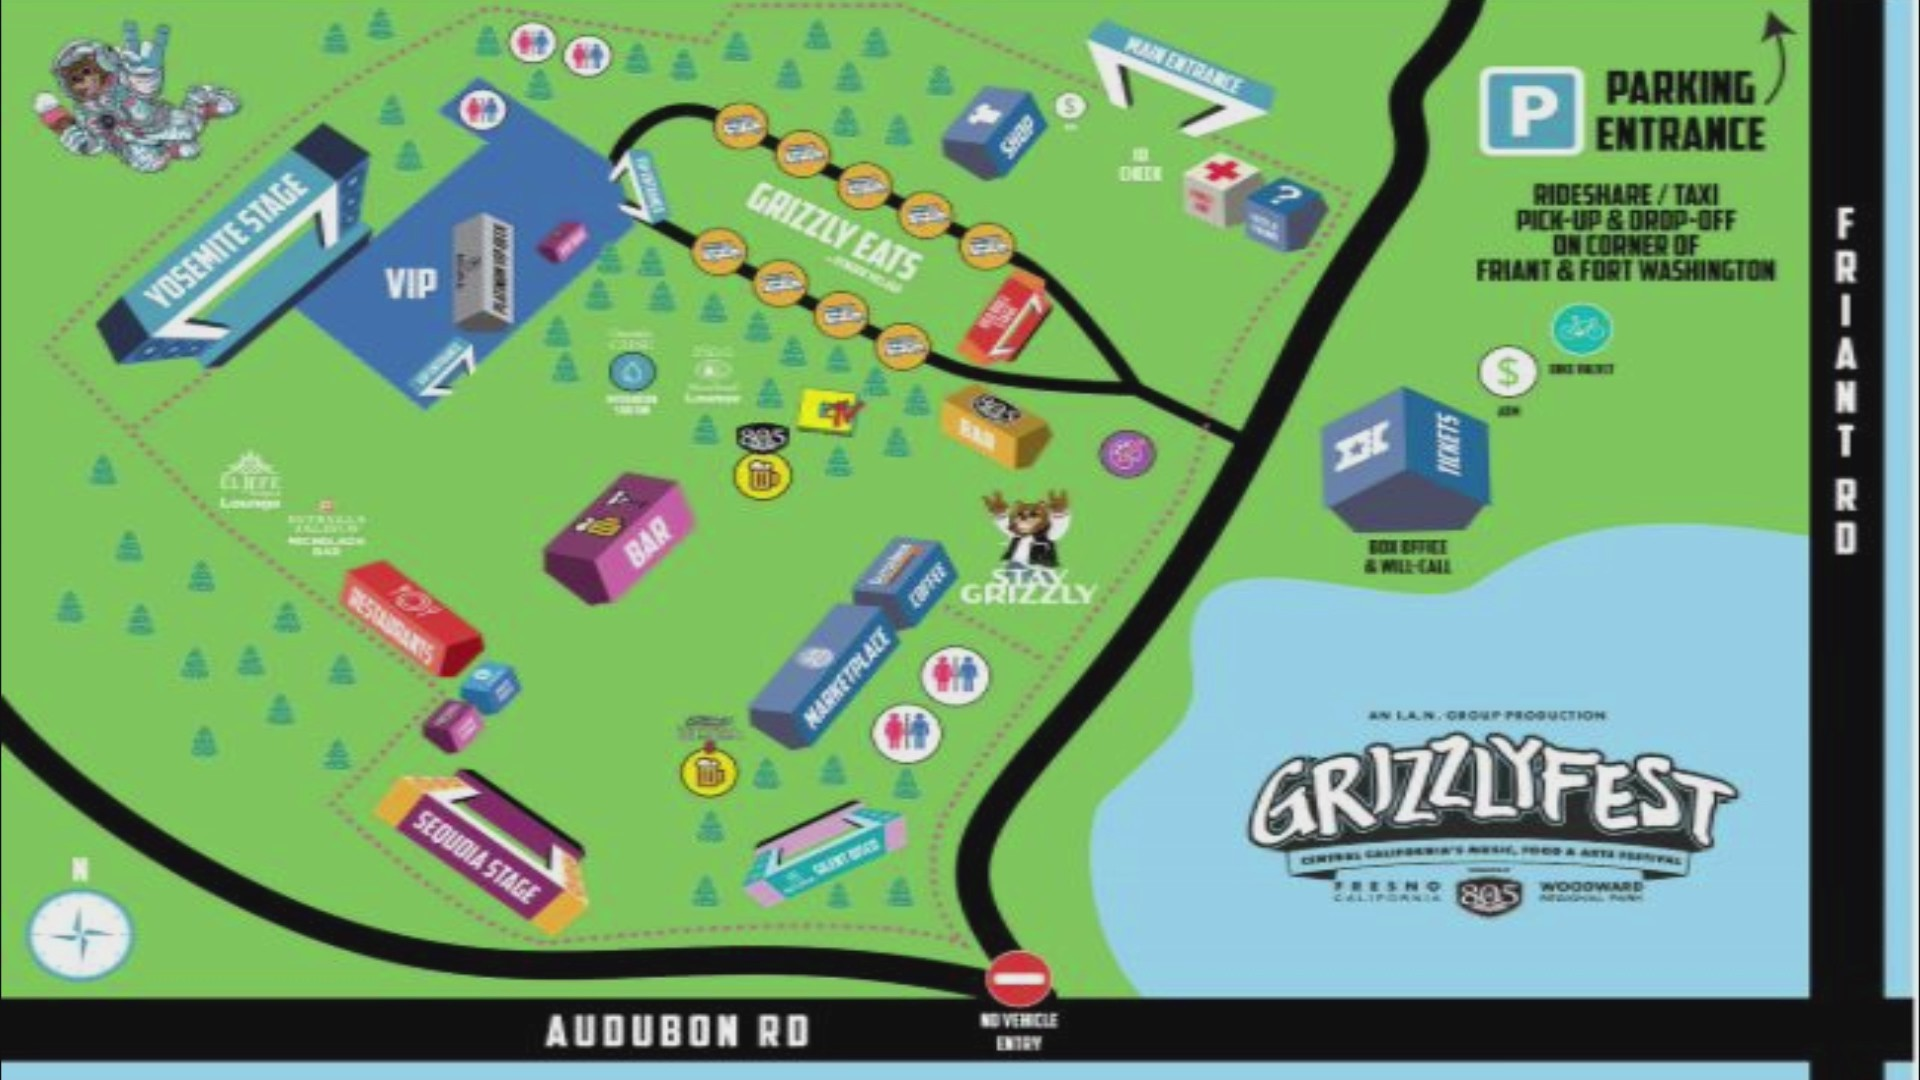 Grizzly Fest music and arts festival set to kick off